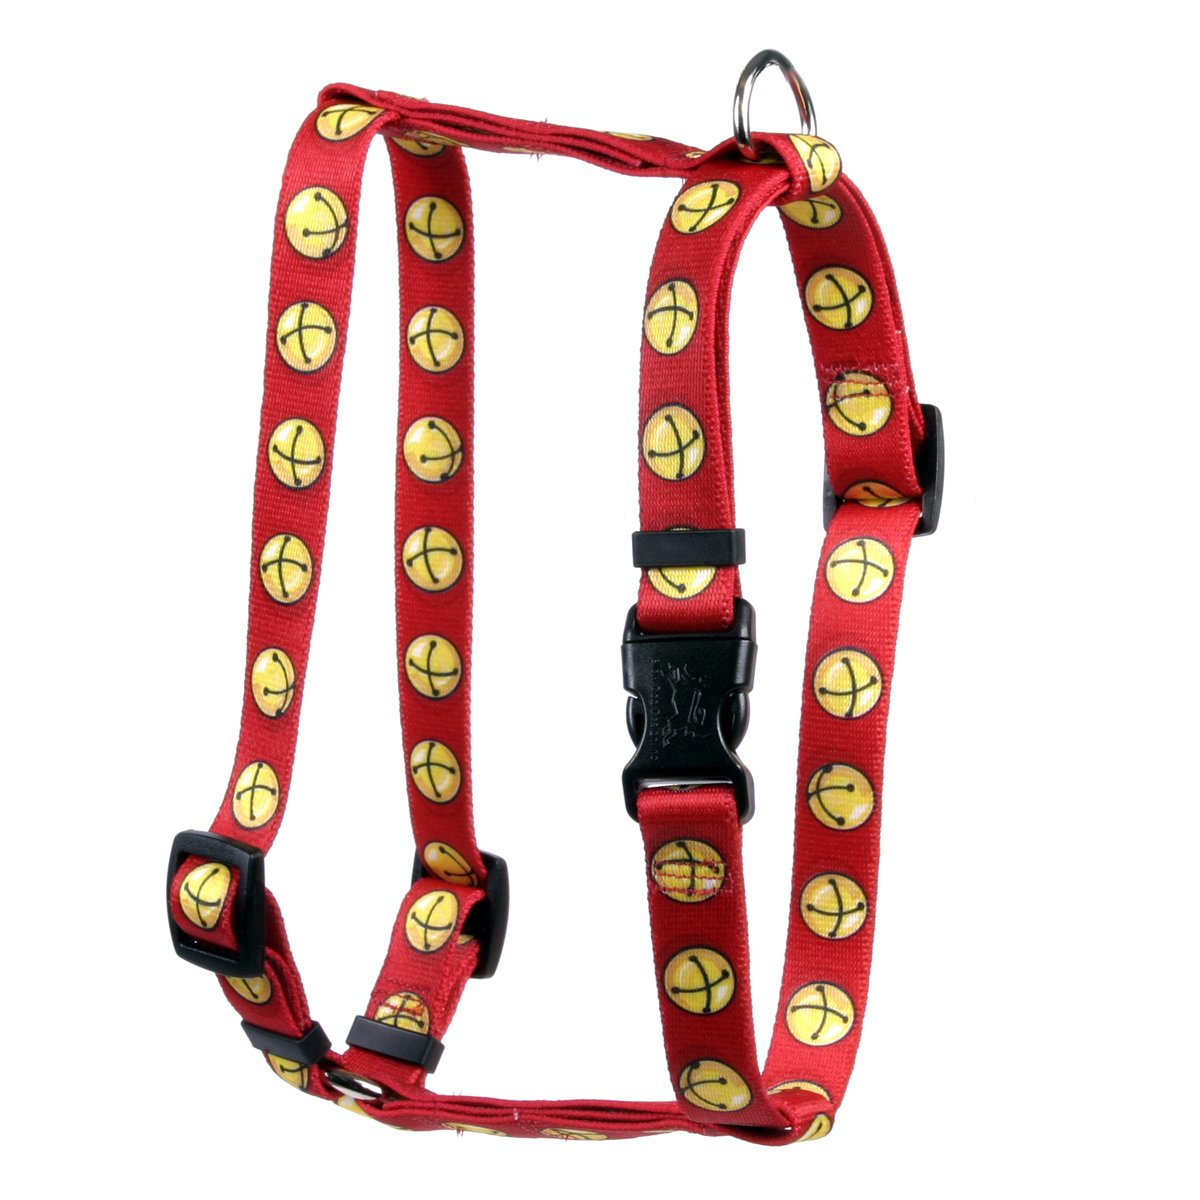 Yellow Dog Design Jingle Bells Roman Style H Dog Harness Fits Chest Circumference of 8 to 14'', X-Small/3/8